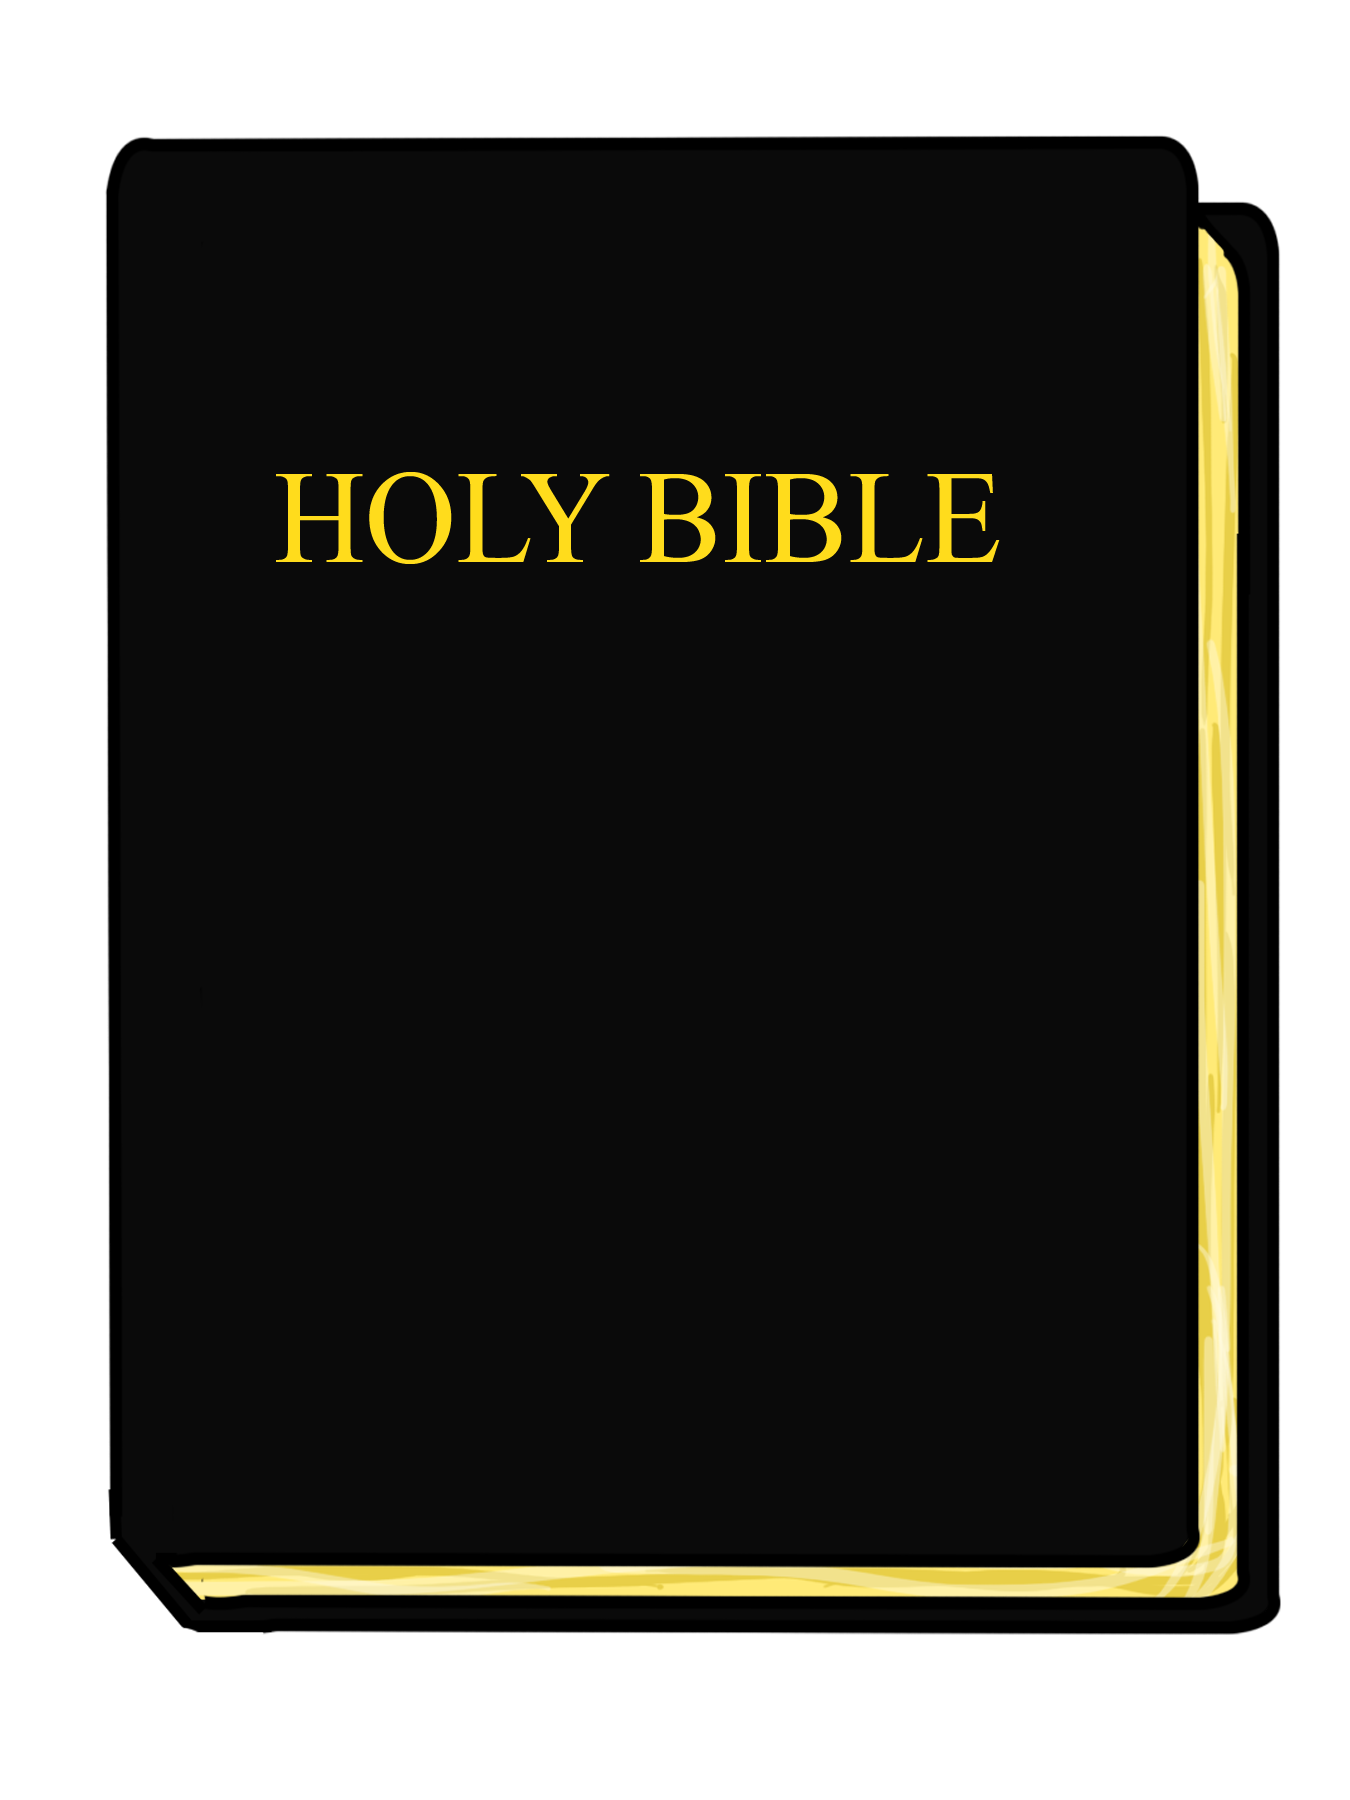 Free to Use amp Public Domain Bible Clip Art bible Bible.